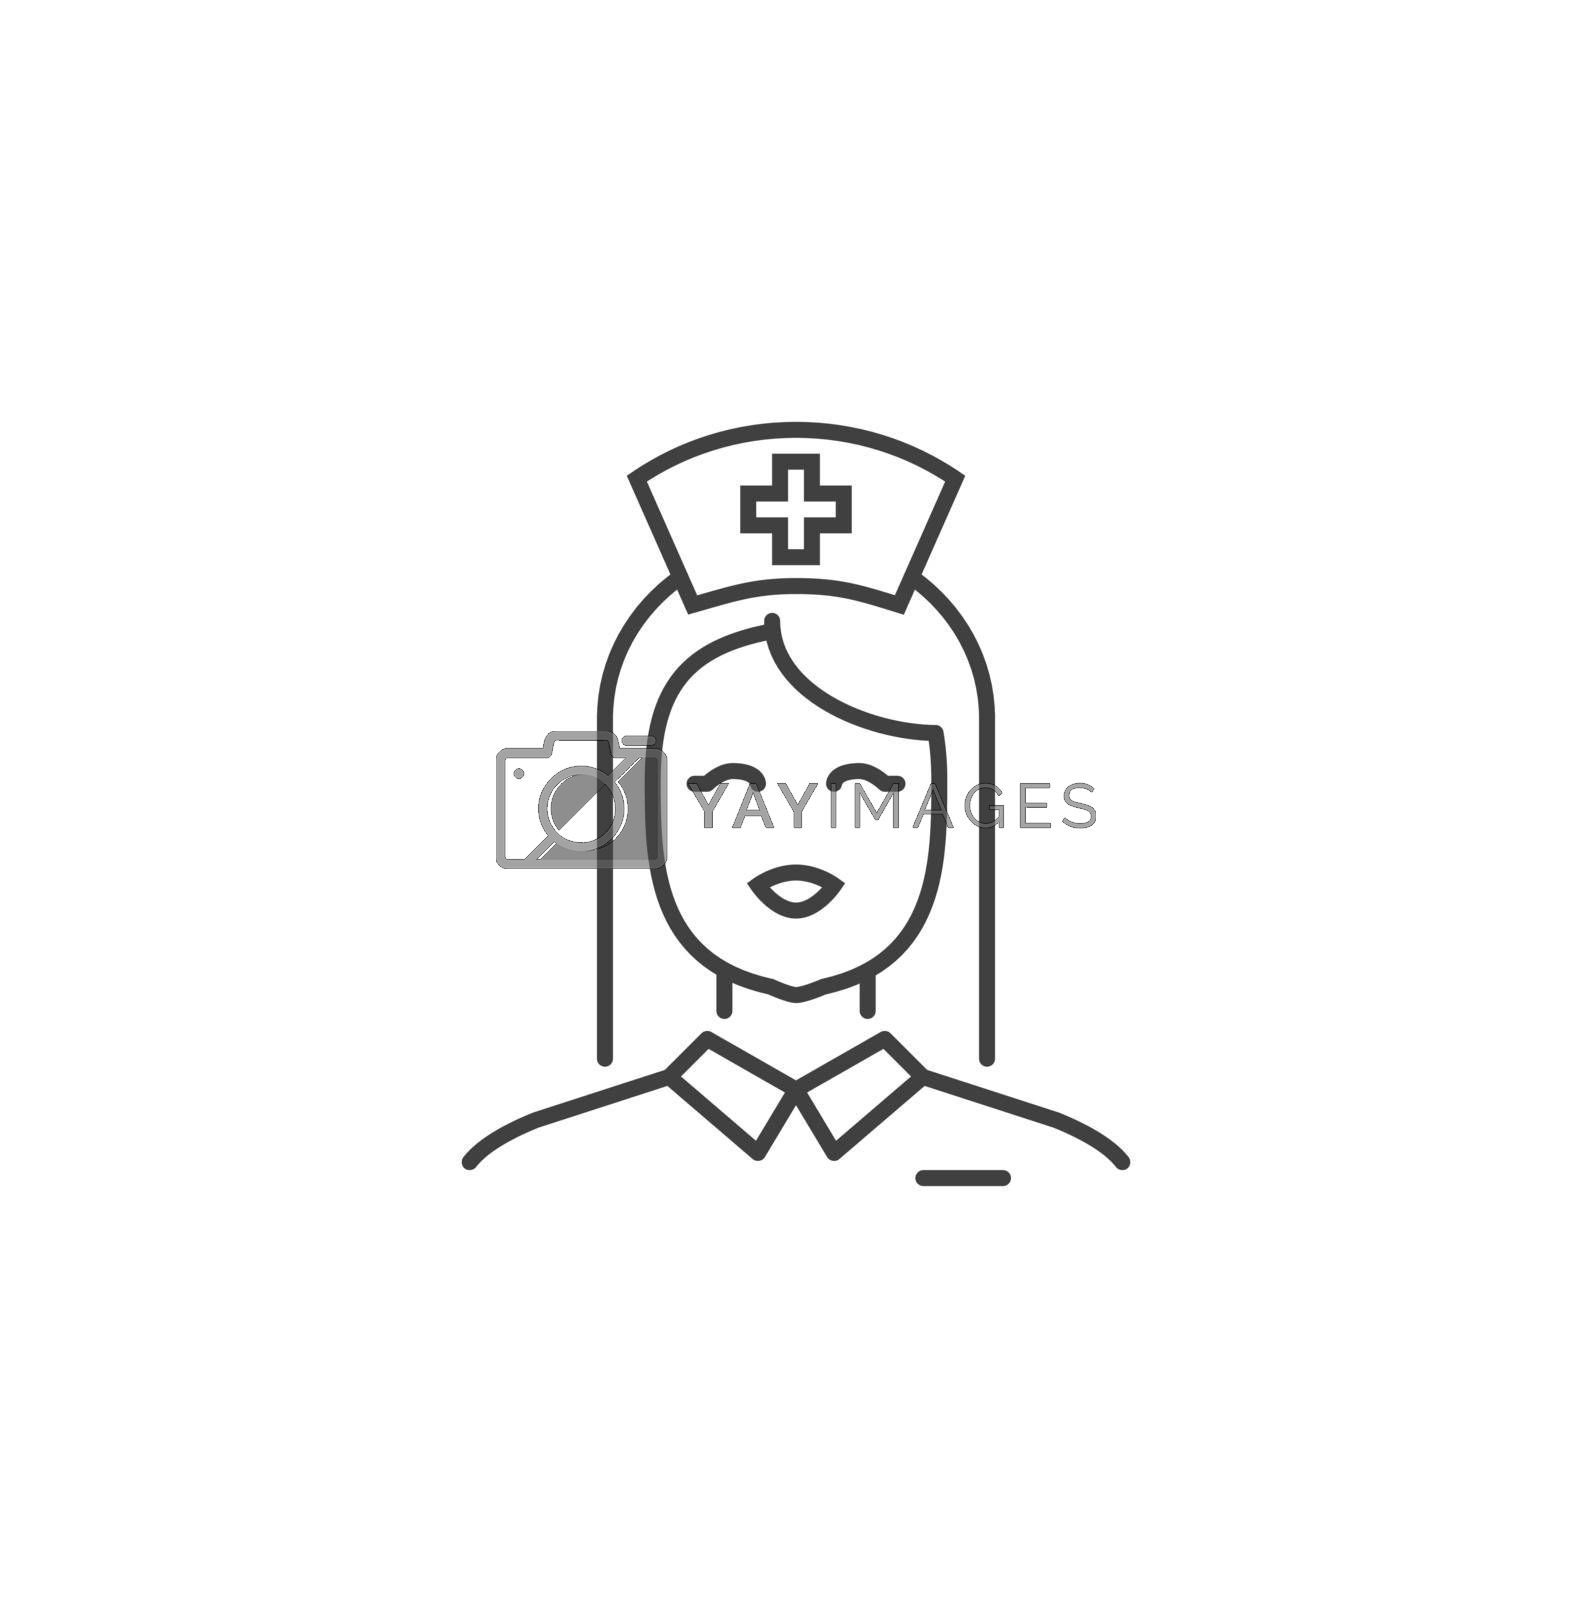 Nurse Thin Line Related Vector Icon. Flat Icon Isolated on the Black Background. Editable Stroke EPS file. Vector illustration.